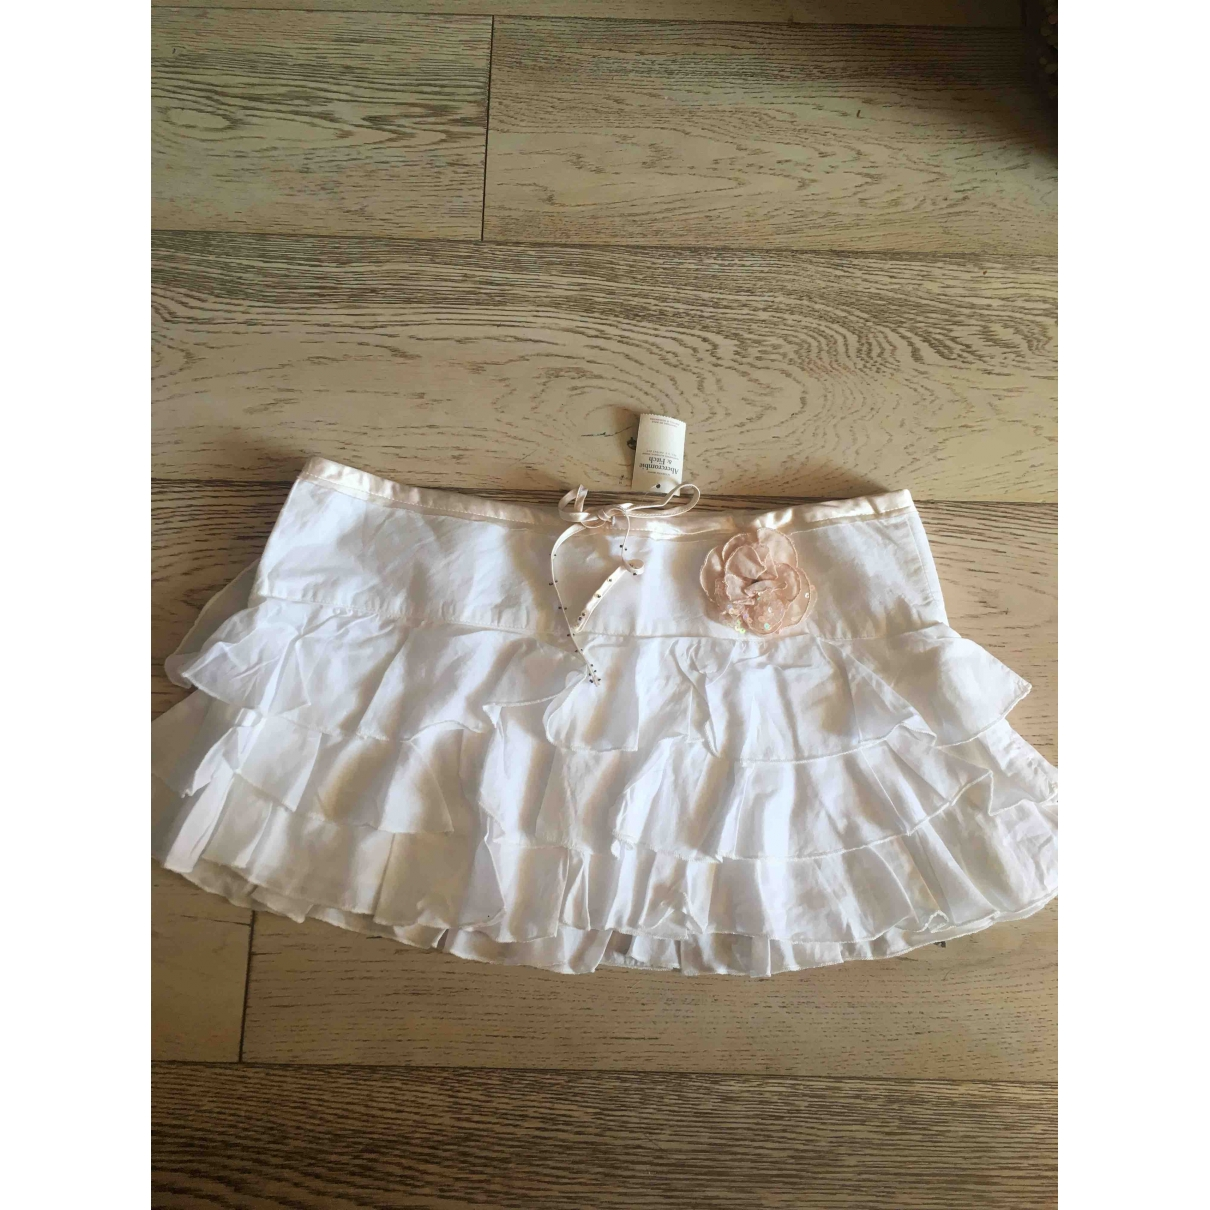 Abercrombie & Fitch \N White Cotton skirt for Women S International